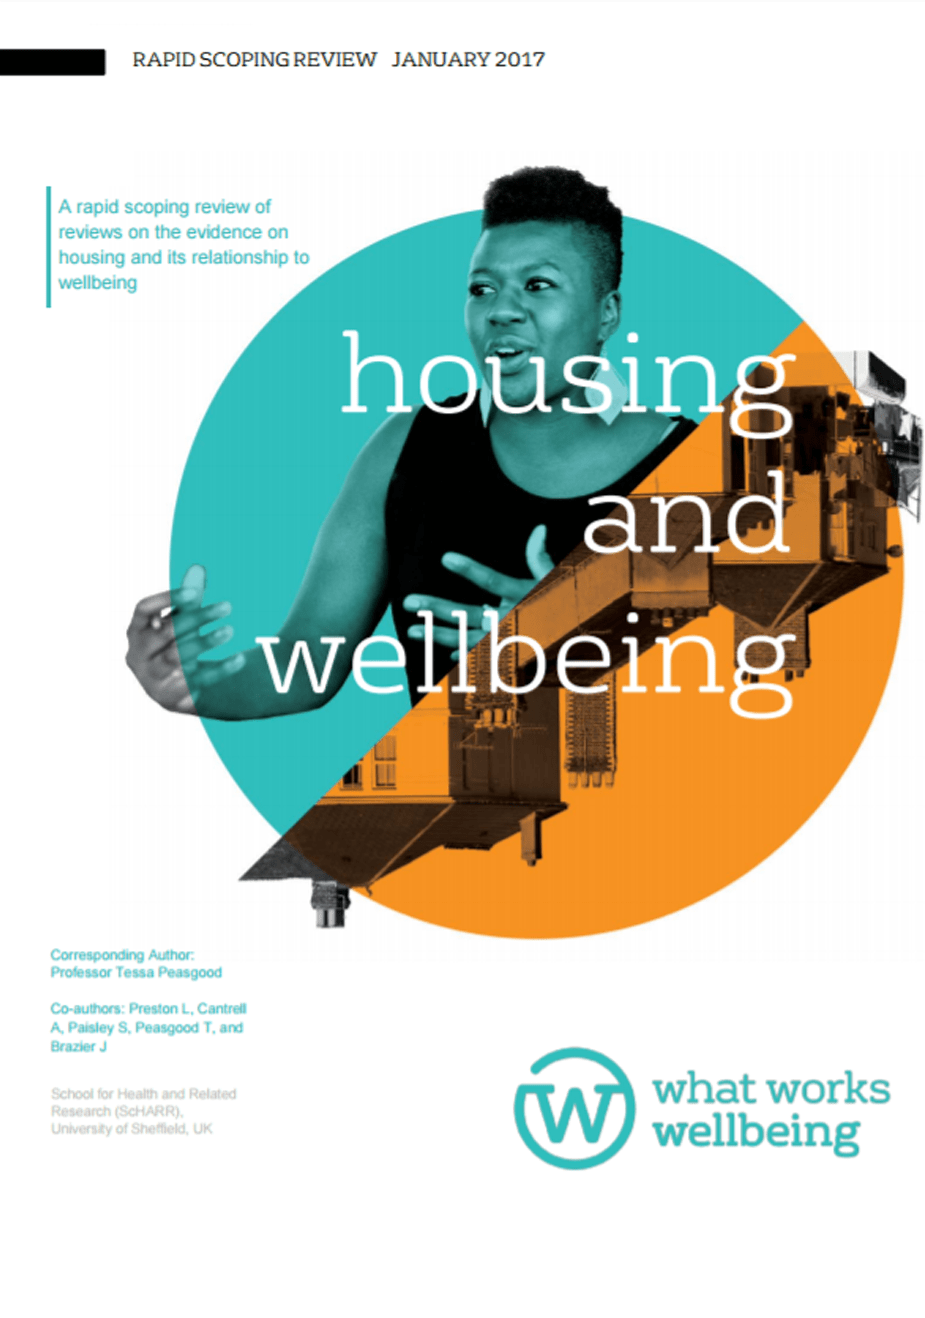 Housing and Wellbeing: Rapid Scoping Review + Appendices